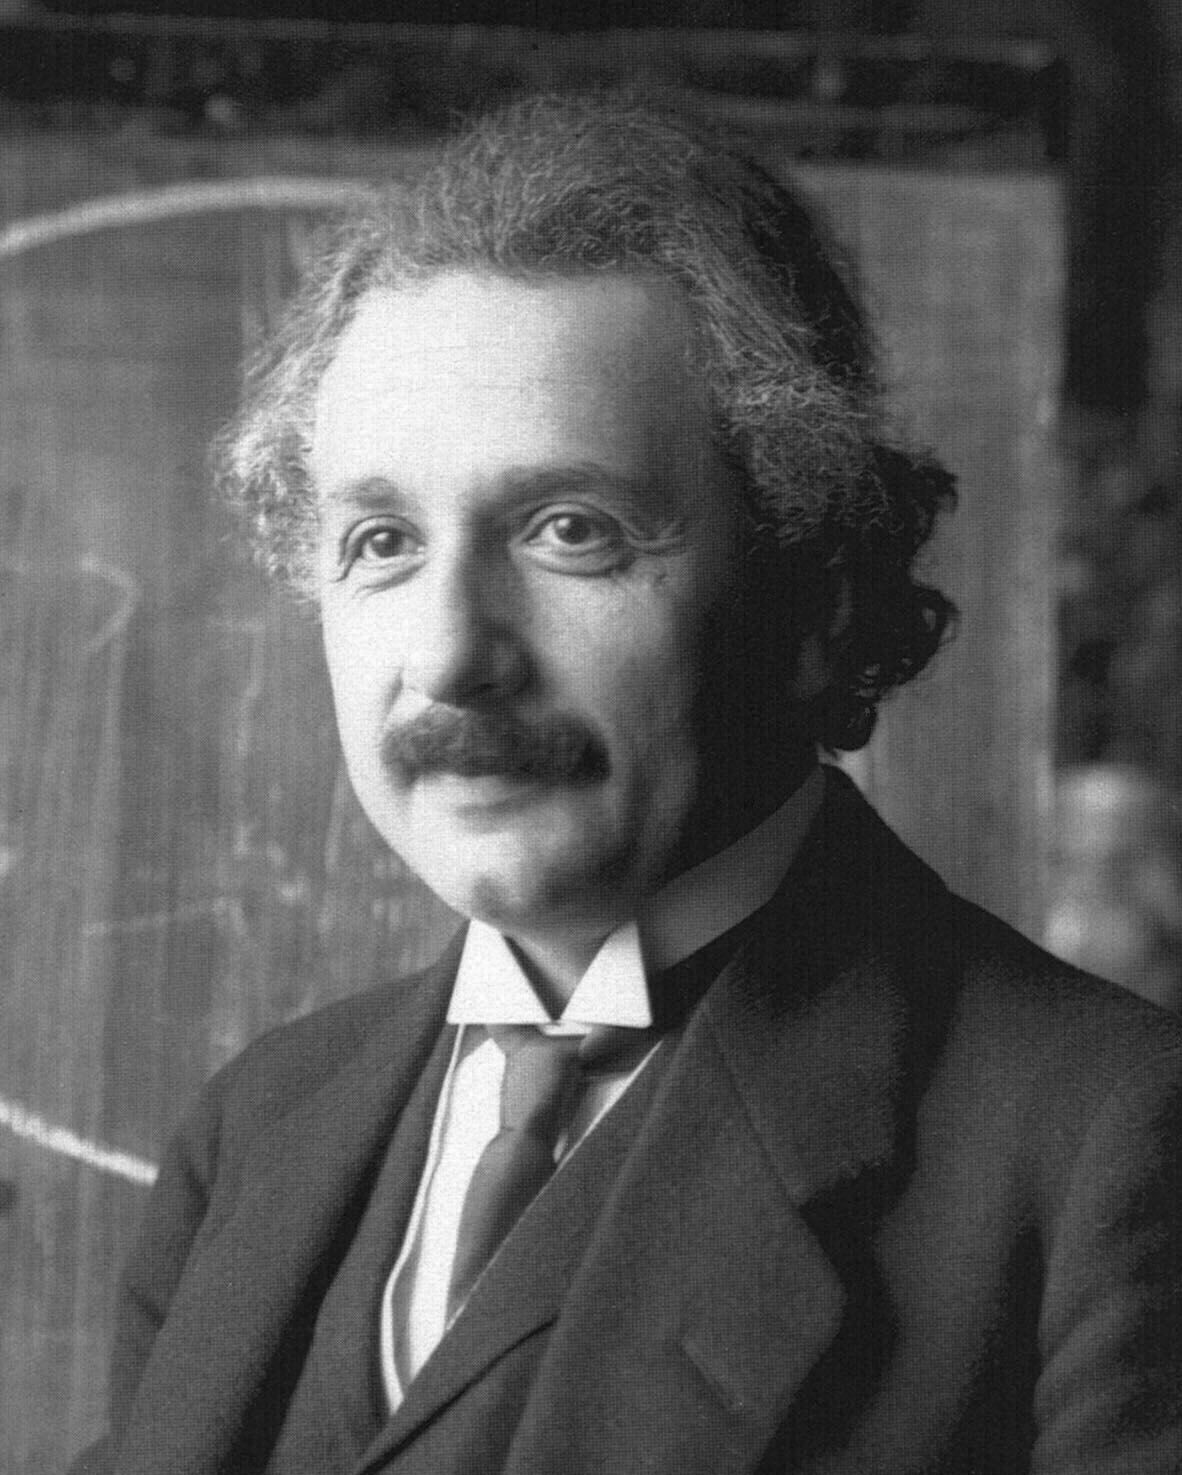 In 1896 Albert Einstein trained as a teacher in physics and mathematics. He obtained his diploma in 1901 and since he could not find a teaching position, he accepted a position as technical assistant in the Swiss Patent Office. By 1905 he obtained his doctoral degree. It was during this time in the Patent Office, and in his spare time, that he produced much of his remarkable work that would later result in his receiving the 1921 Nobel Prize in P...